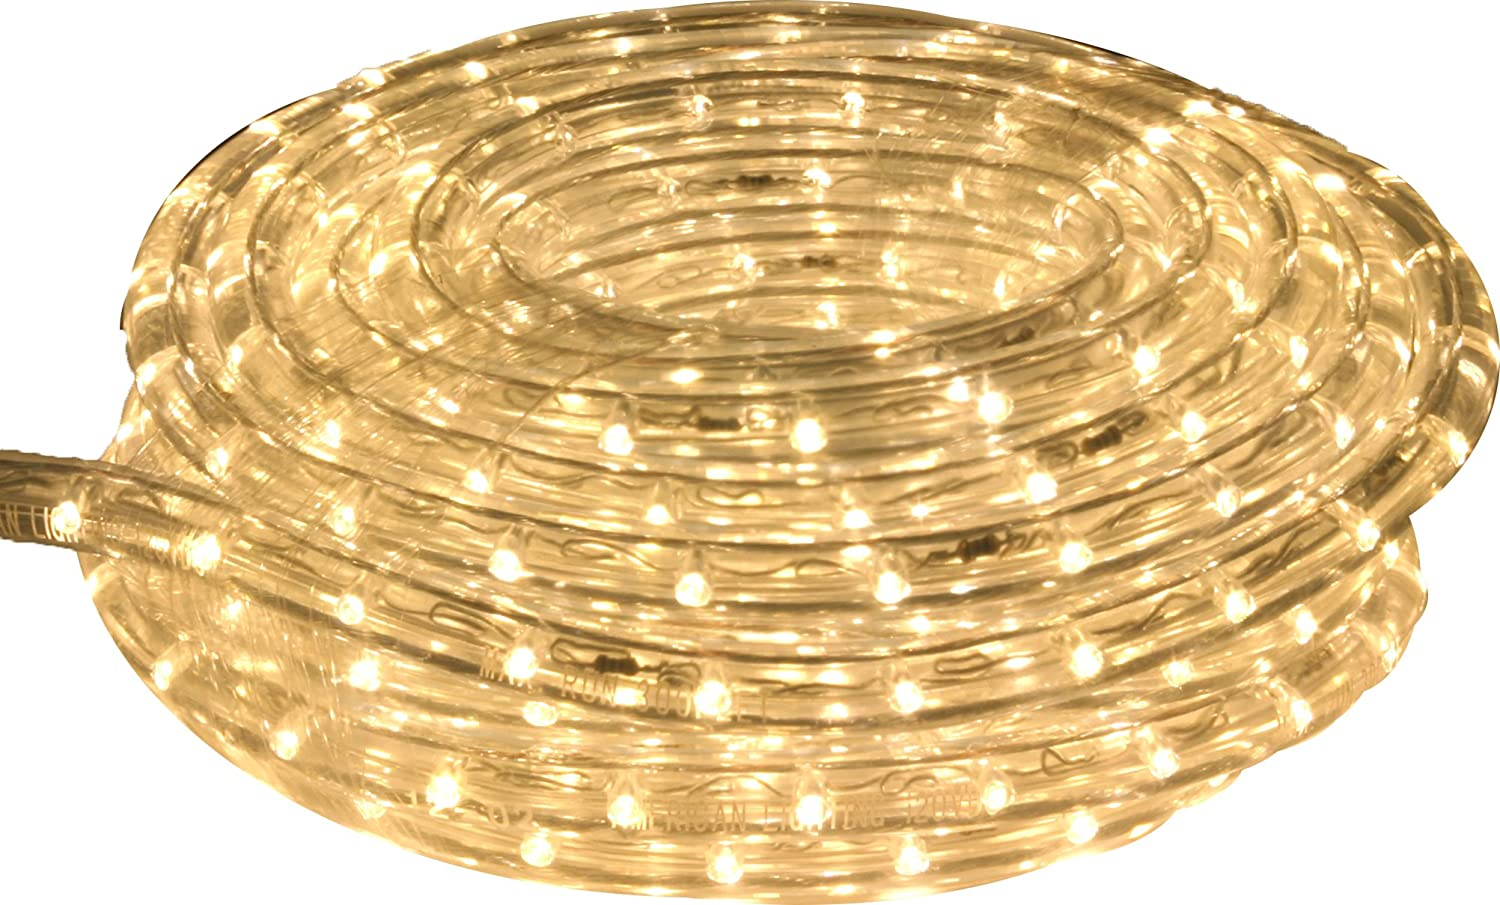 Amazon american lighting lr led uww 9 commercial grade led rope amazon american lighting lr led uww 9 commercial grade led rope lighting kit ultra white 9 foot home improvement aloadofball Choice Image